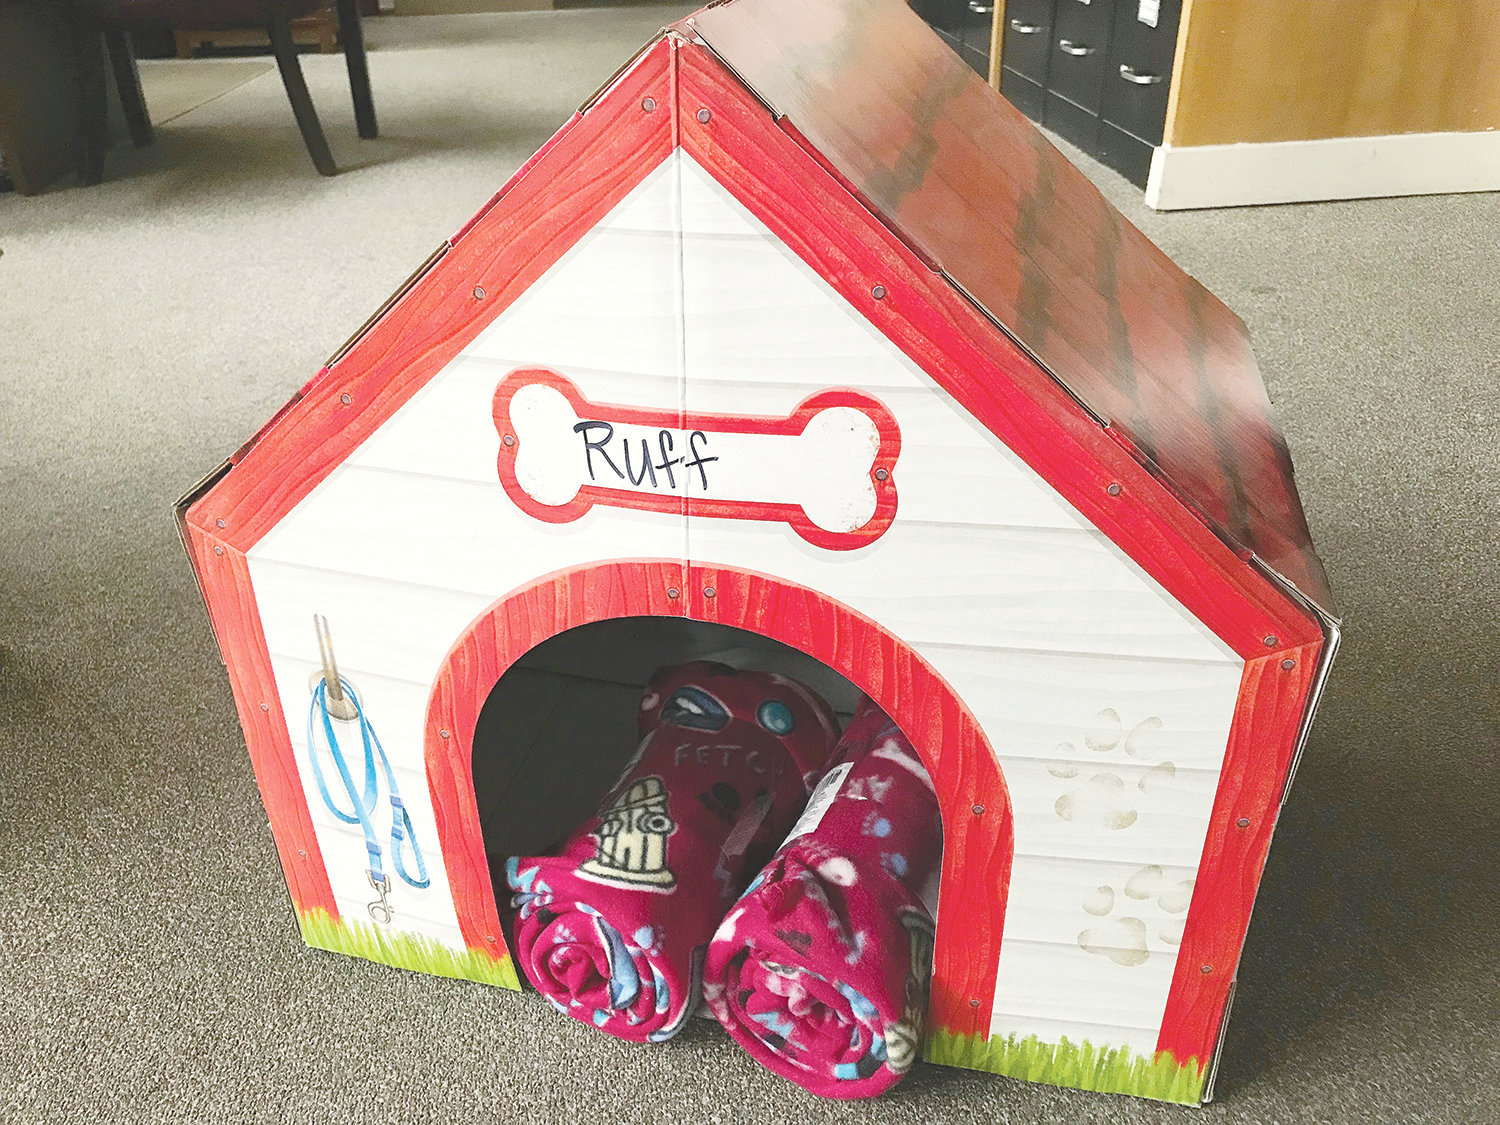 Donations for the RUFF Christmas Drive can be made at three locations in Walker County.